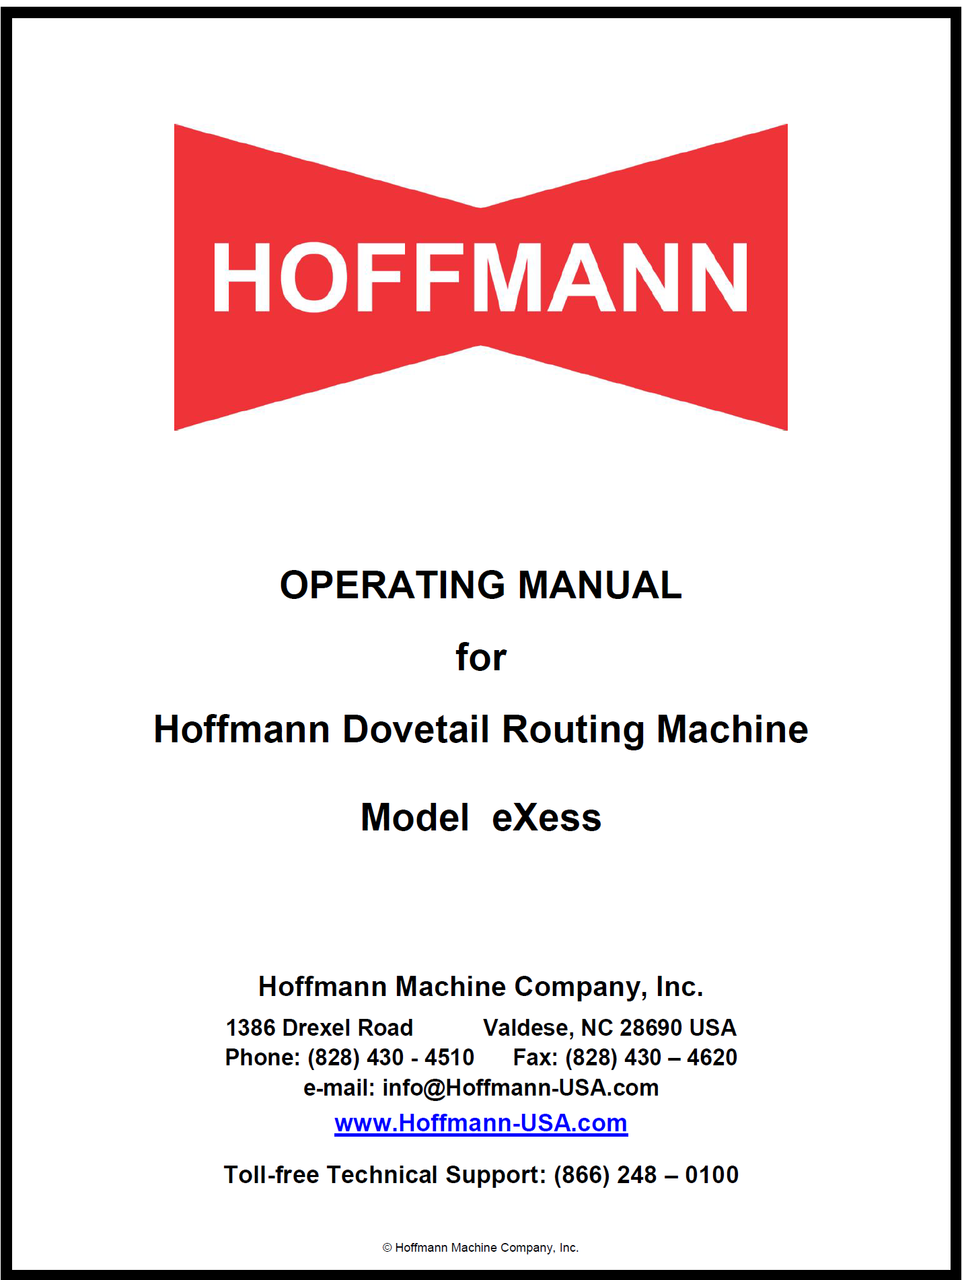 Operating Manual for Hoffmann eXess Handheld Dovetail Router